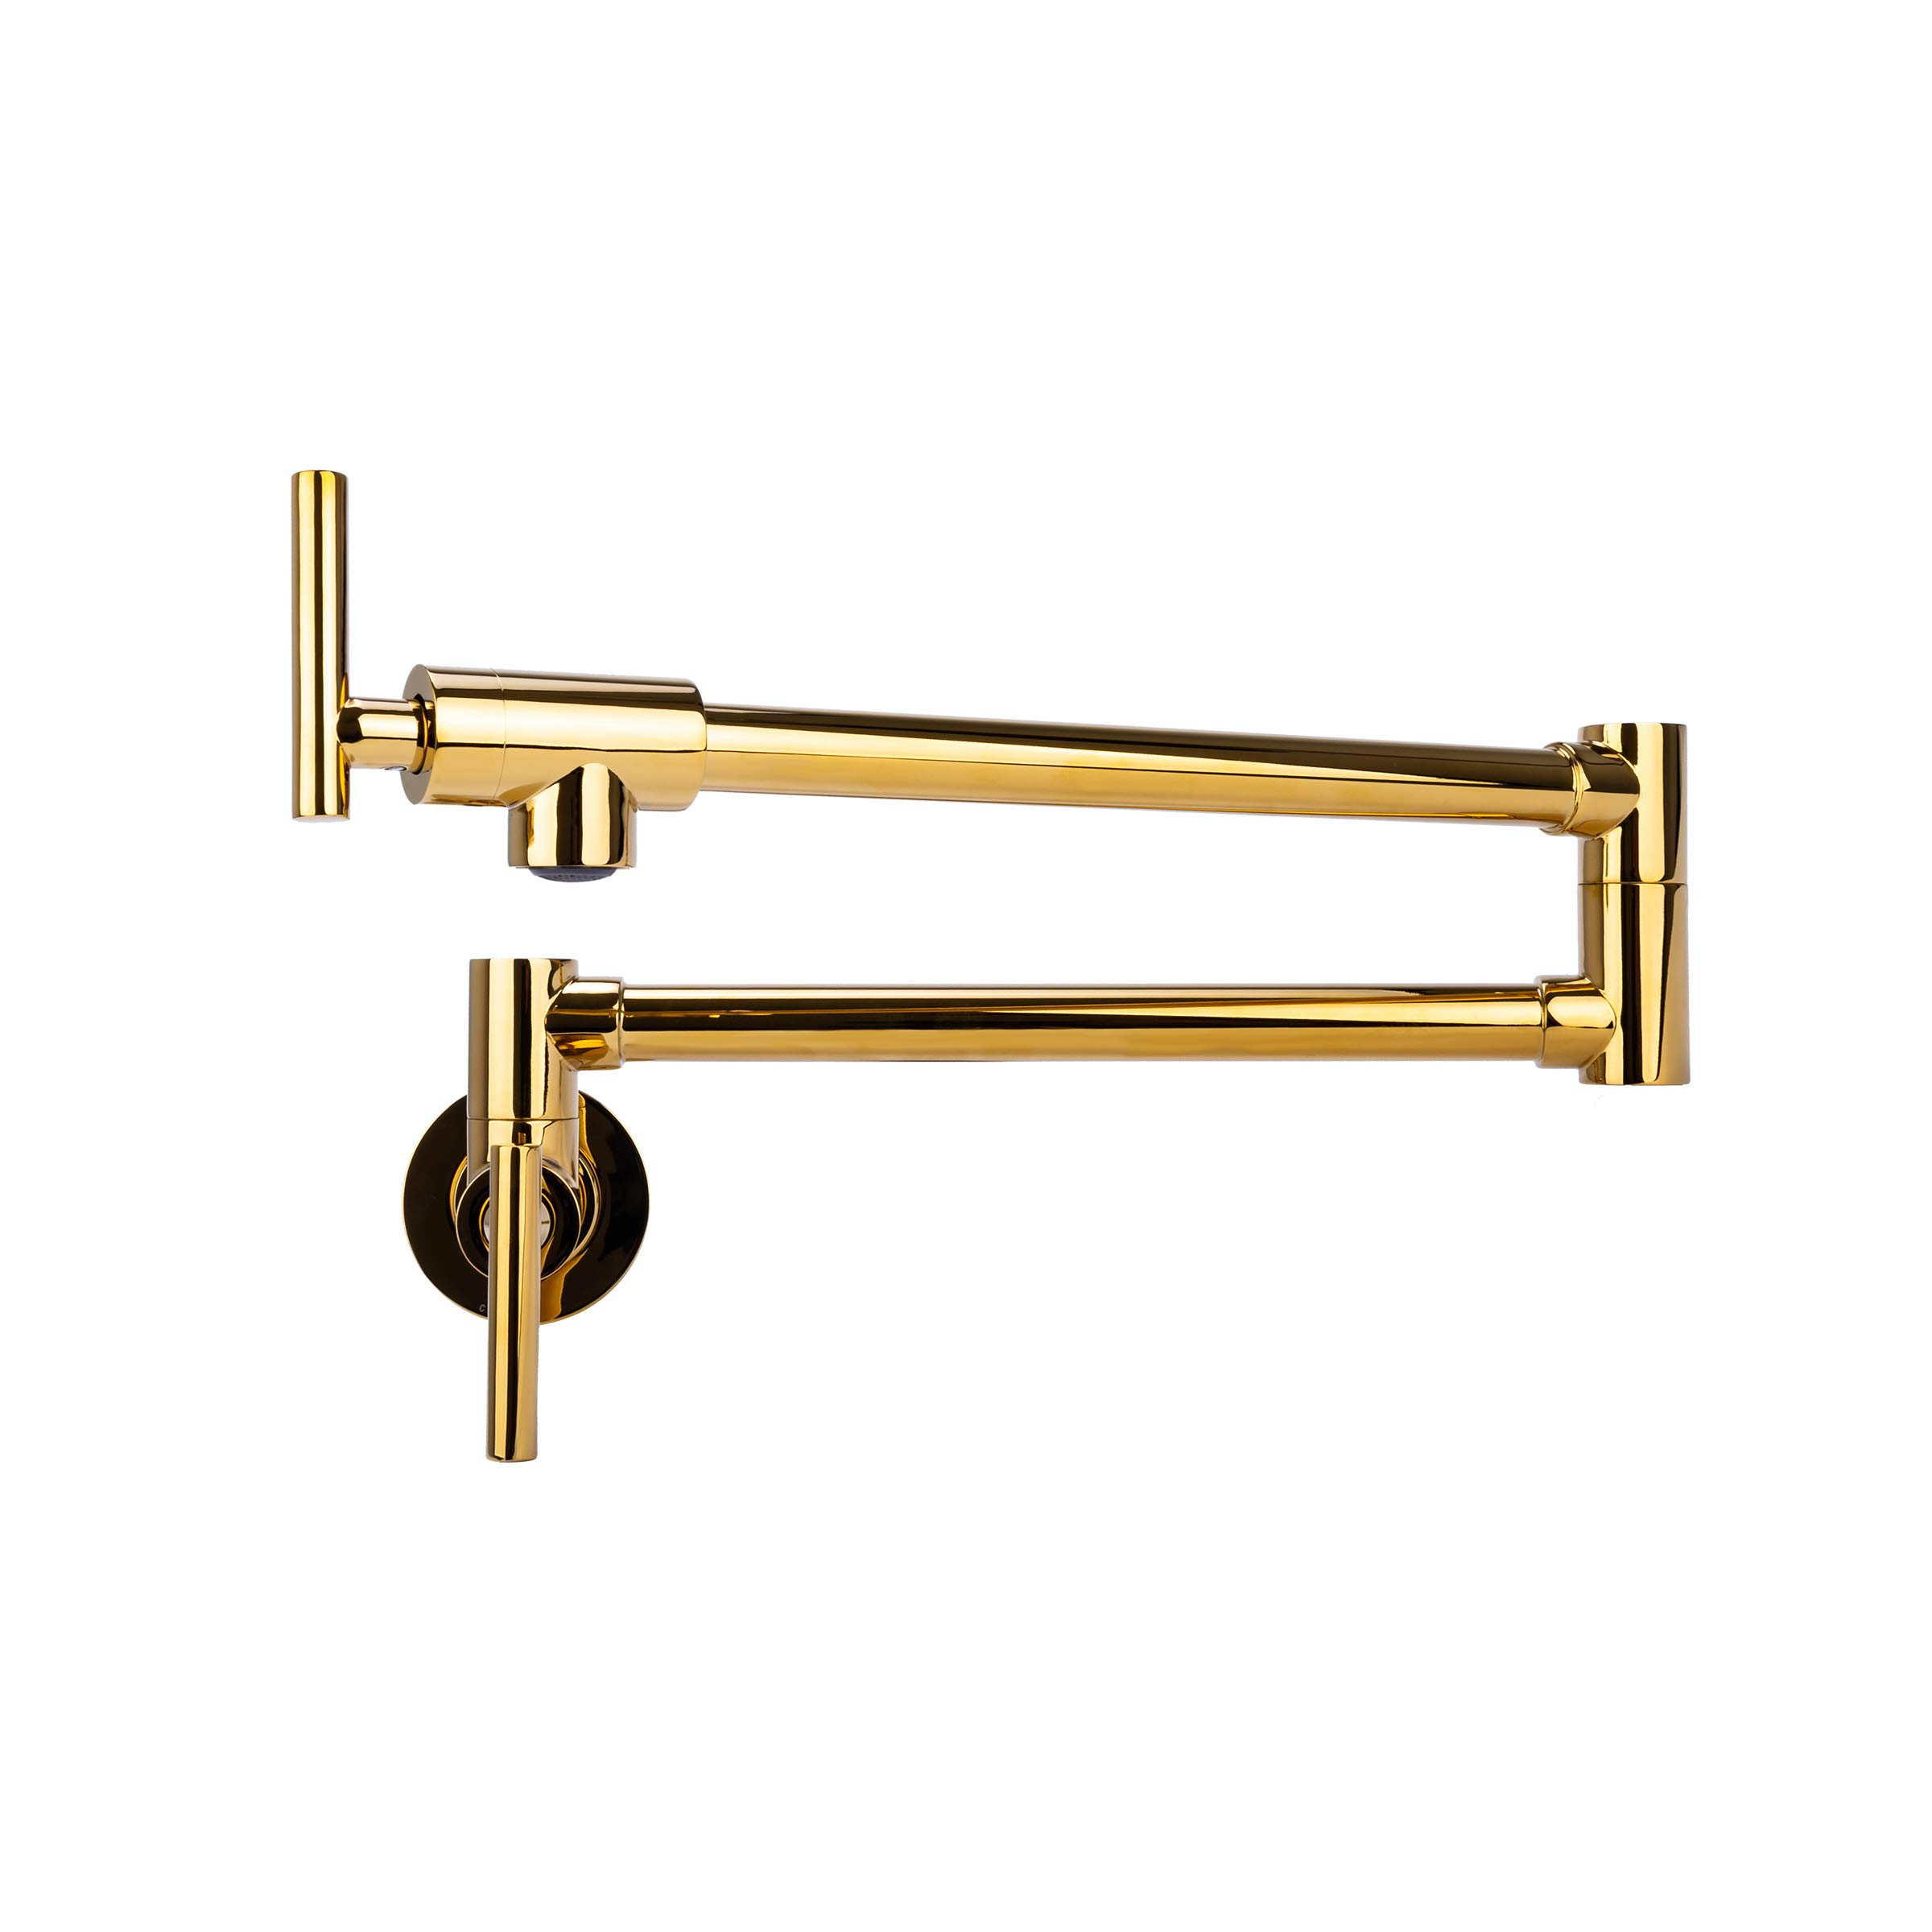 Brienza by Italia, K62202-GLD, Contemporary Pot Filler Kitchen Faucet in Gold Finish